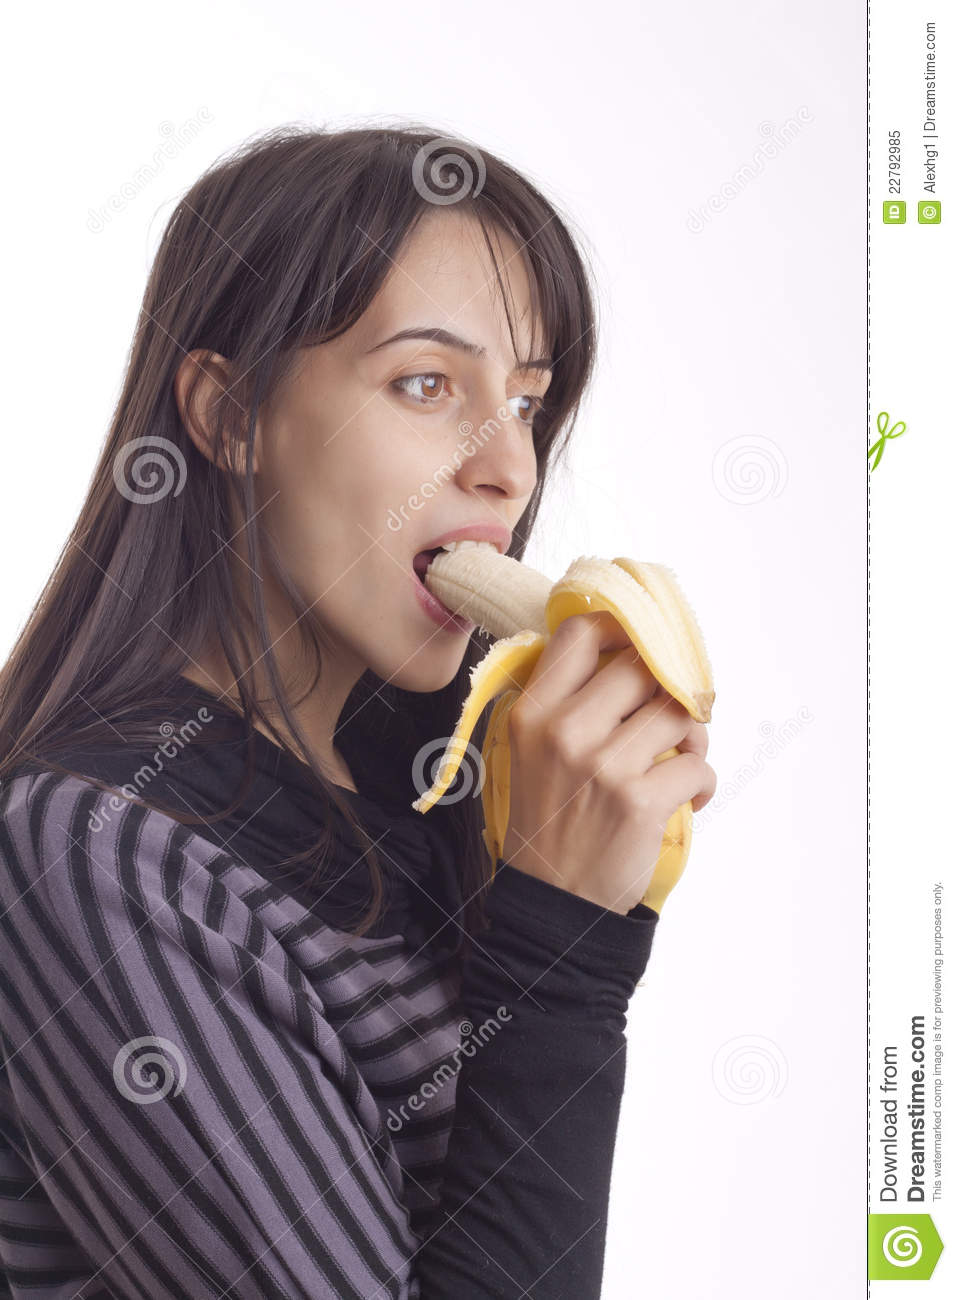 Girl's eating a banana stock image. Image of smile ...